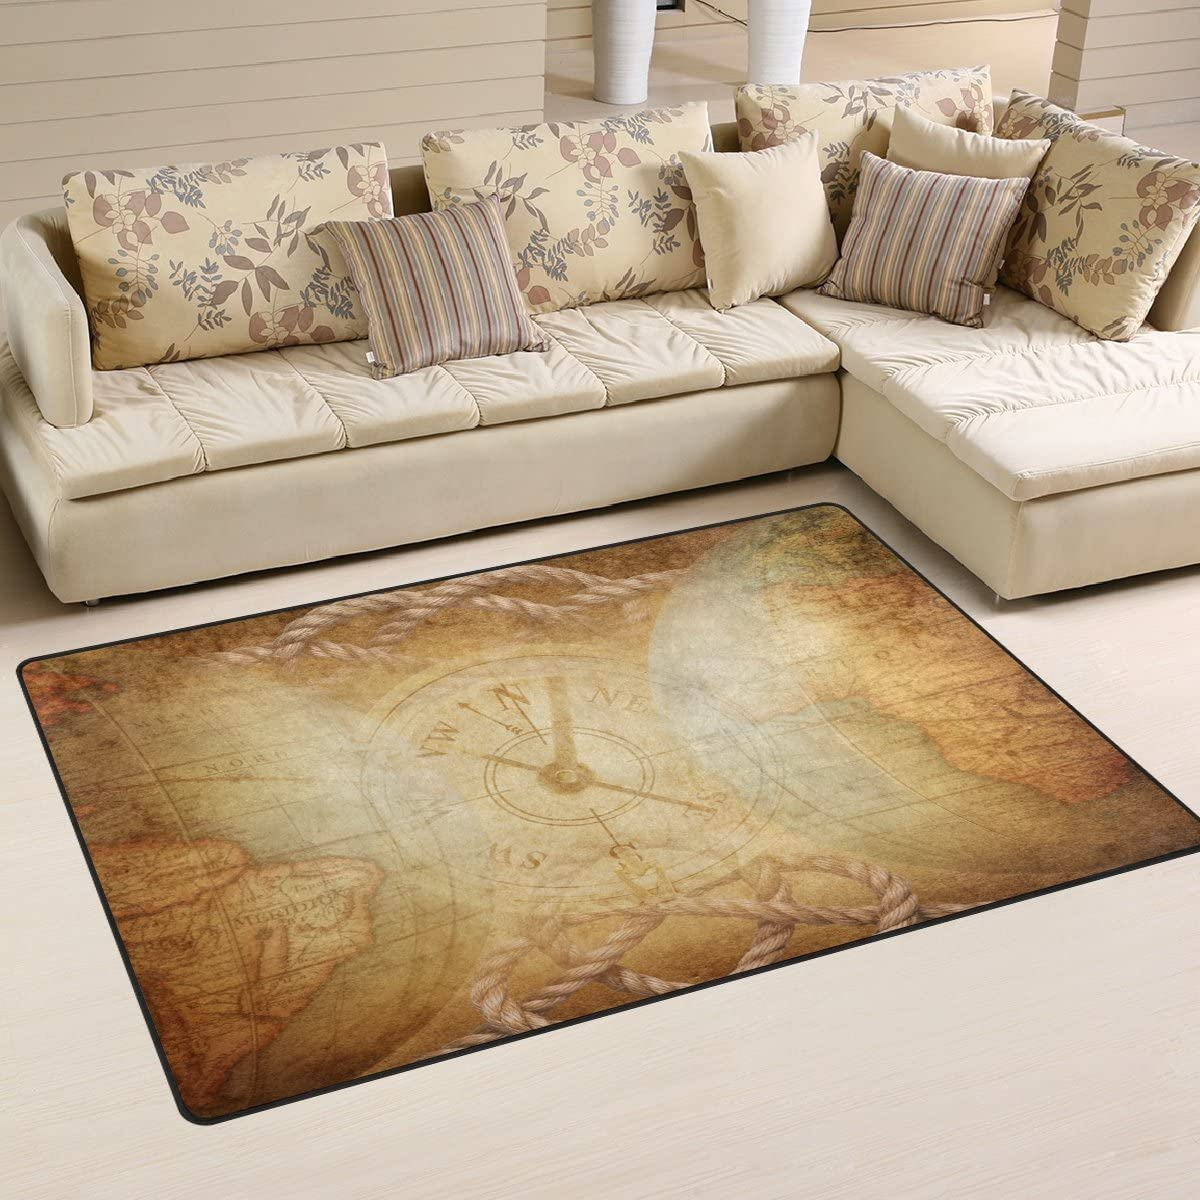 ALAZA Non-slip Area Rugs Home Decor, Vintage Globe and Compass Rose Floor Mat Living Room Bedroom Carpets Doormats 60 x 39 inches